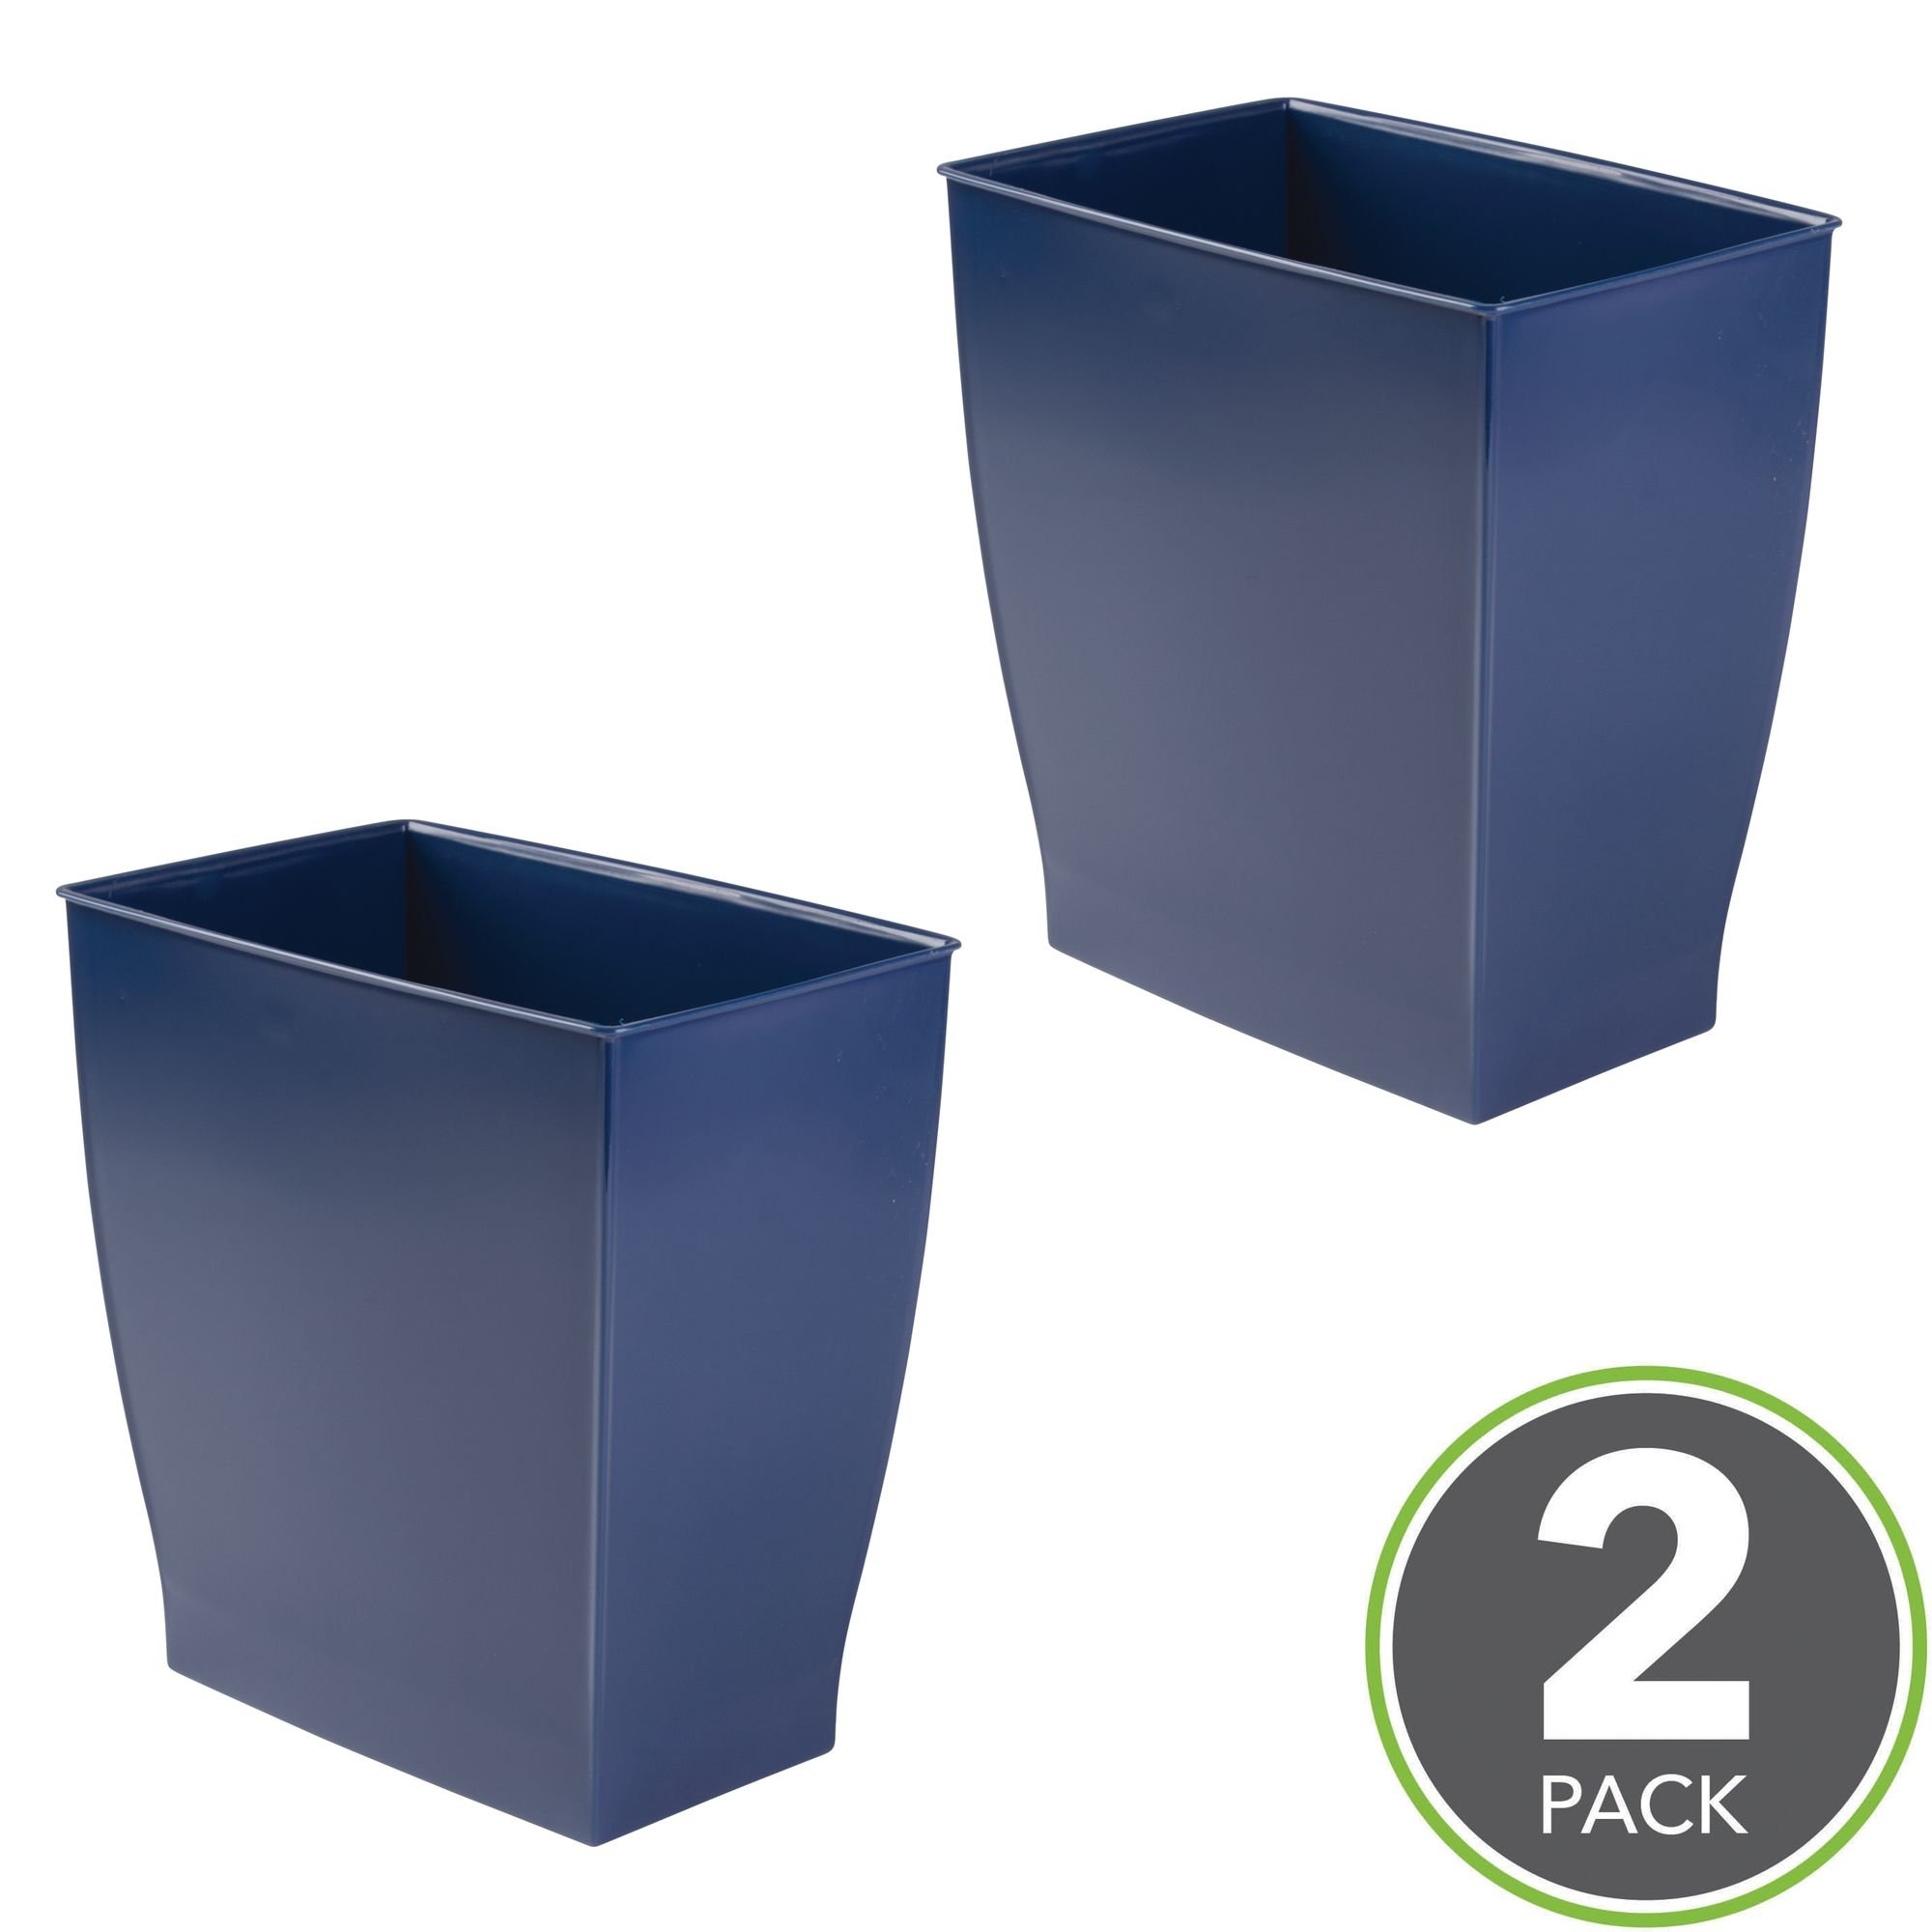 mDesign Rectangular Trash Can Wastebasket, Small Garbage Container Bin for Bathrooms, Powder Rooms, Kitchens, Home Offices - Pack of 2, Shatter-Resistant Plastic, Navy Blue